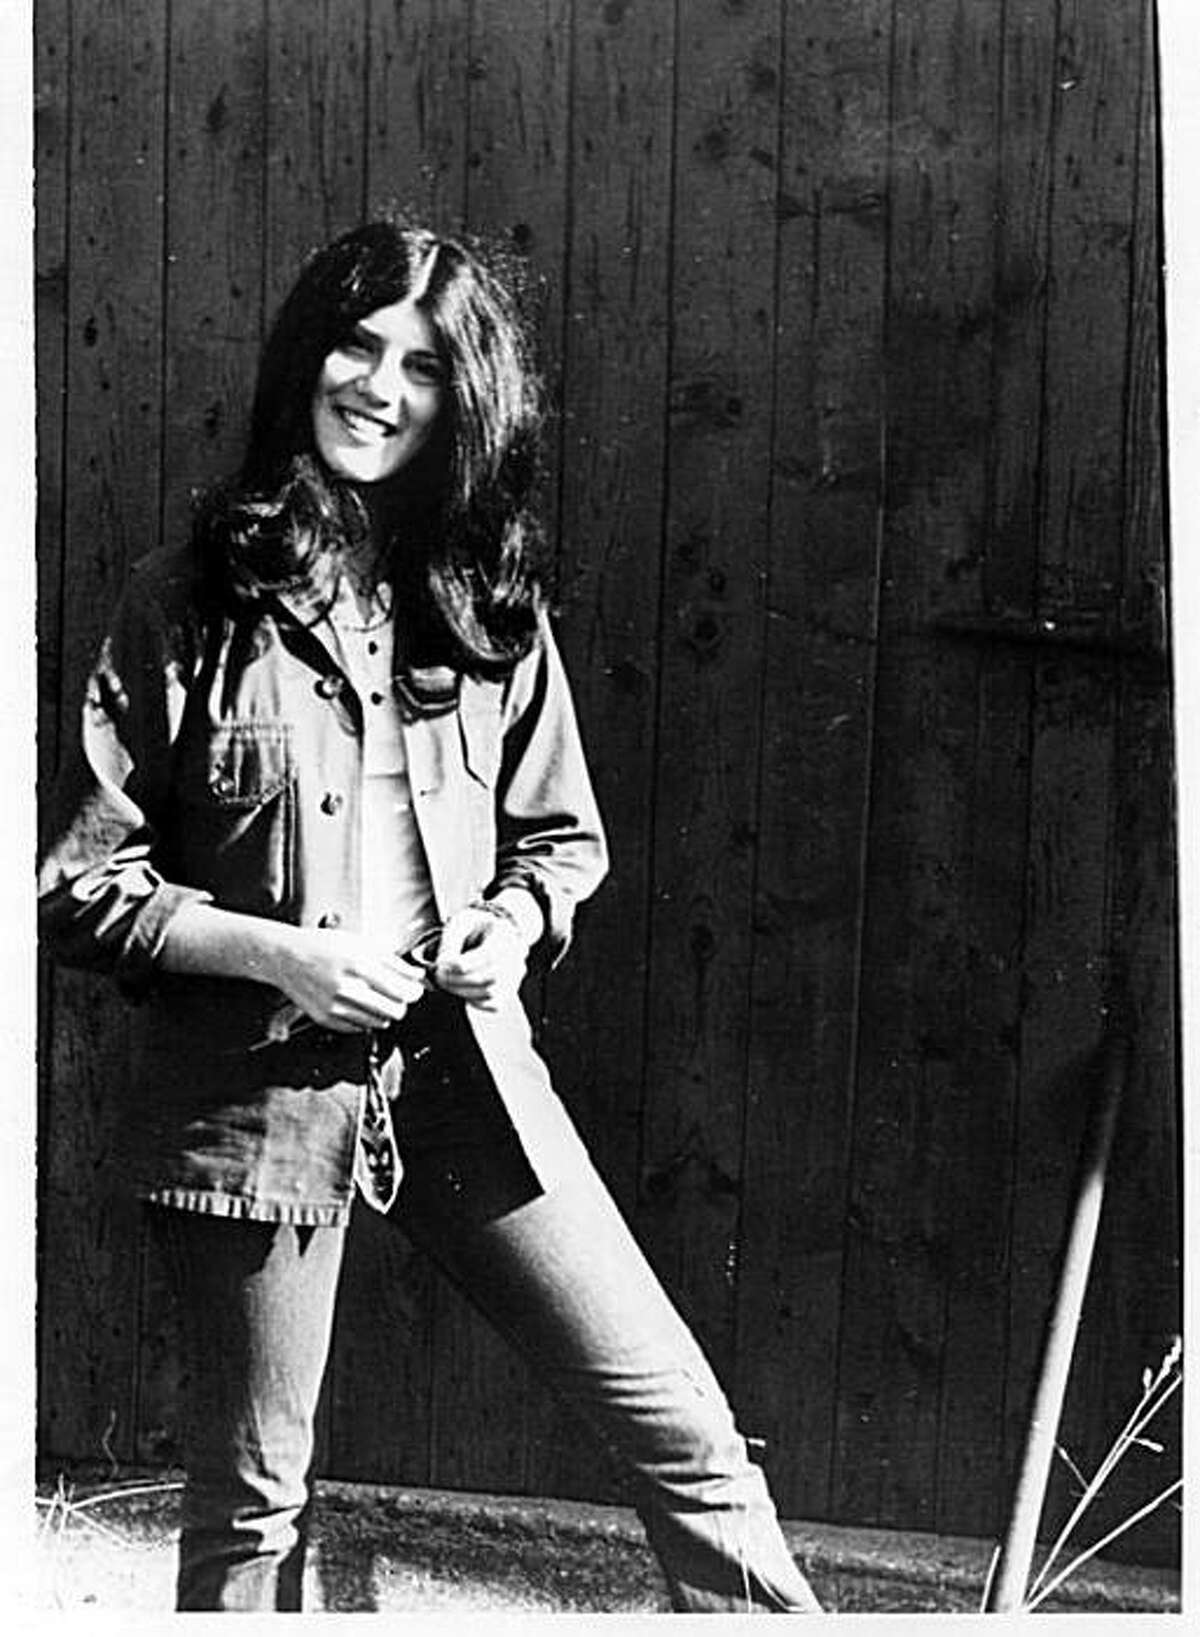 Allison Krause, one of four people shot to death by National Guardsman at Kent State University during an anti-Vietnam War protest May 4, 1970. Her sister is collecting testimonials from people who were at the protest.